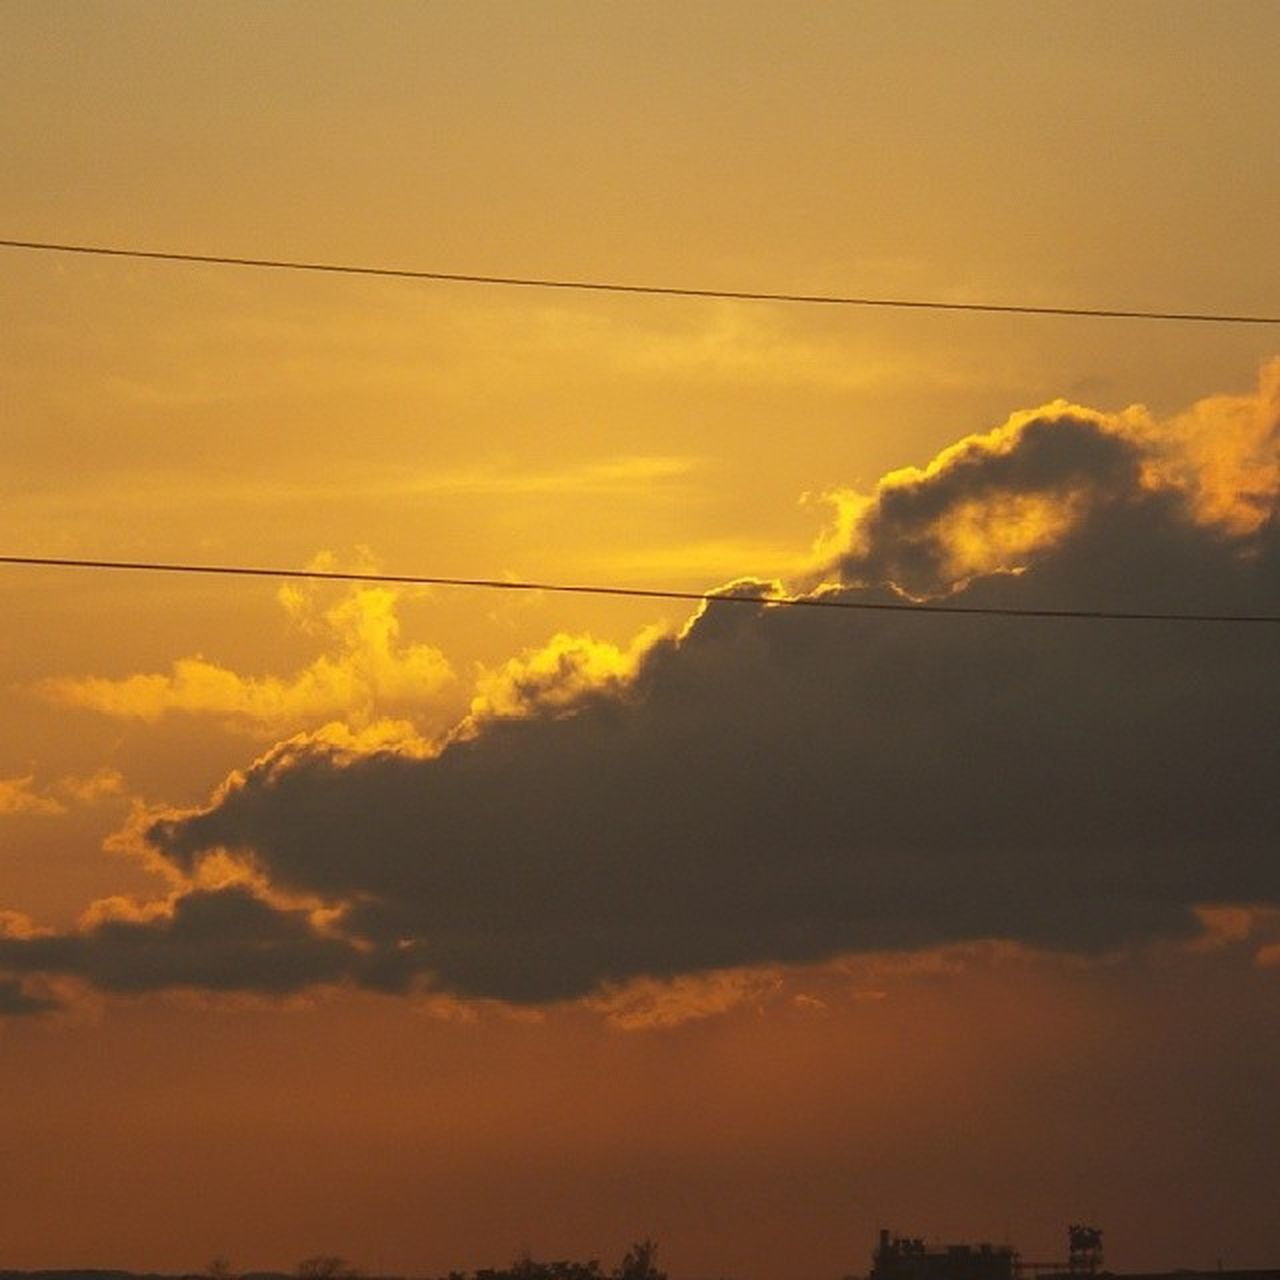 Time check: 1:11am Goodmorning! Sunset AnnoyingElectricWires